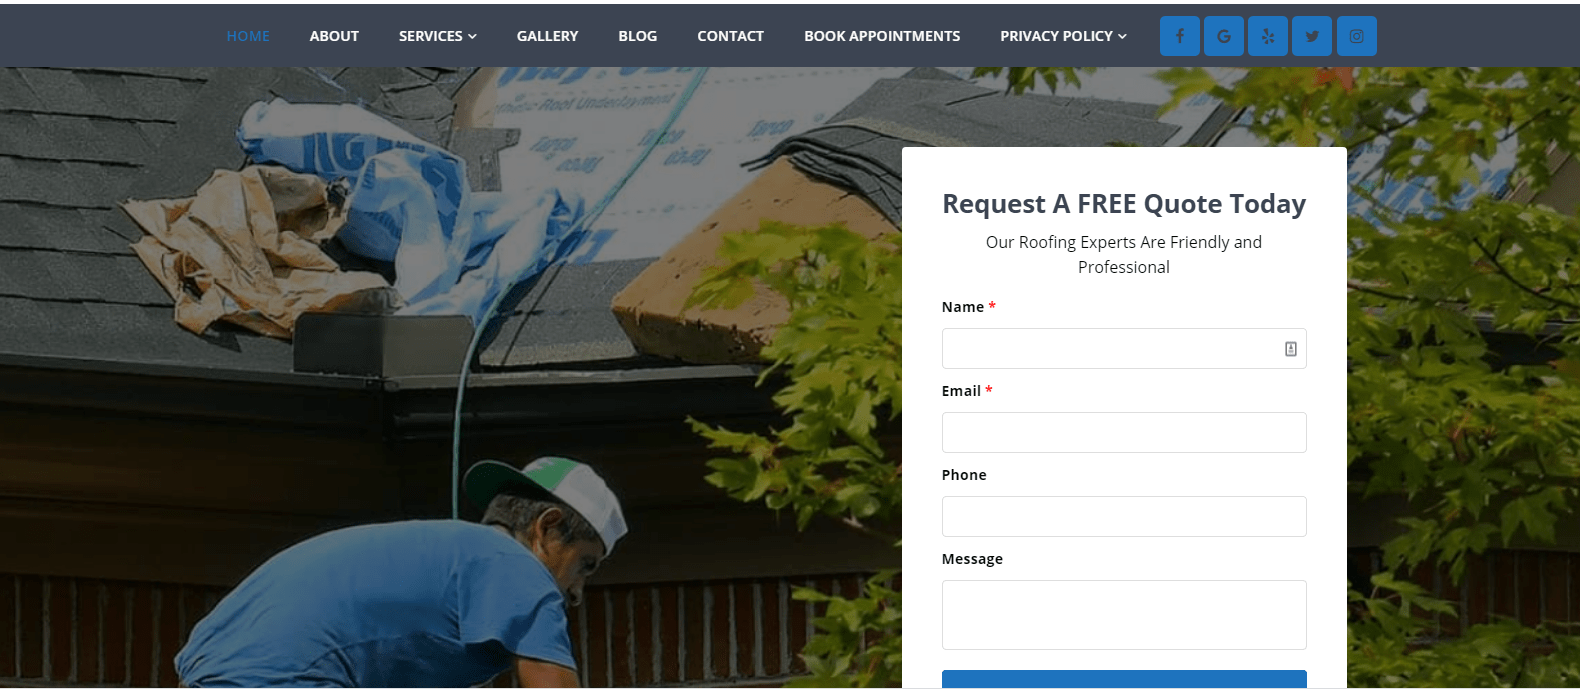 Morgan Family Roofing Website Screenshot